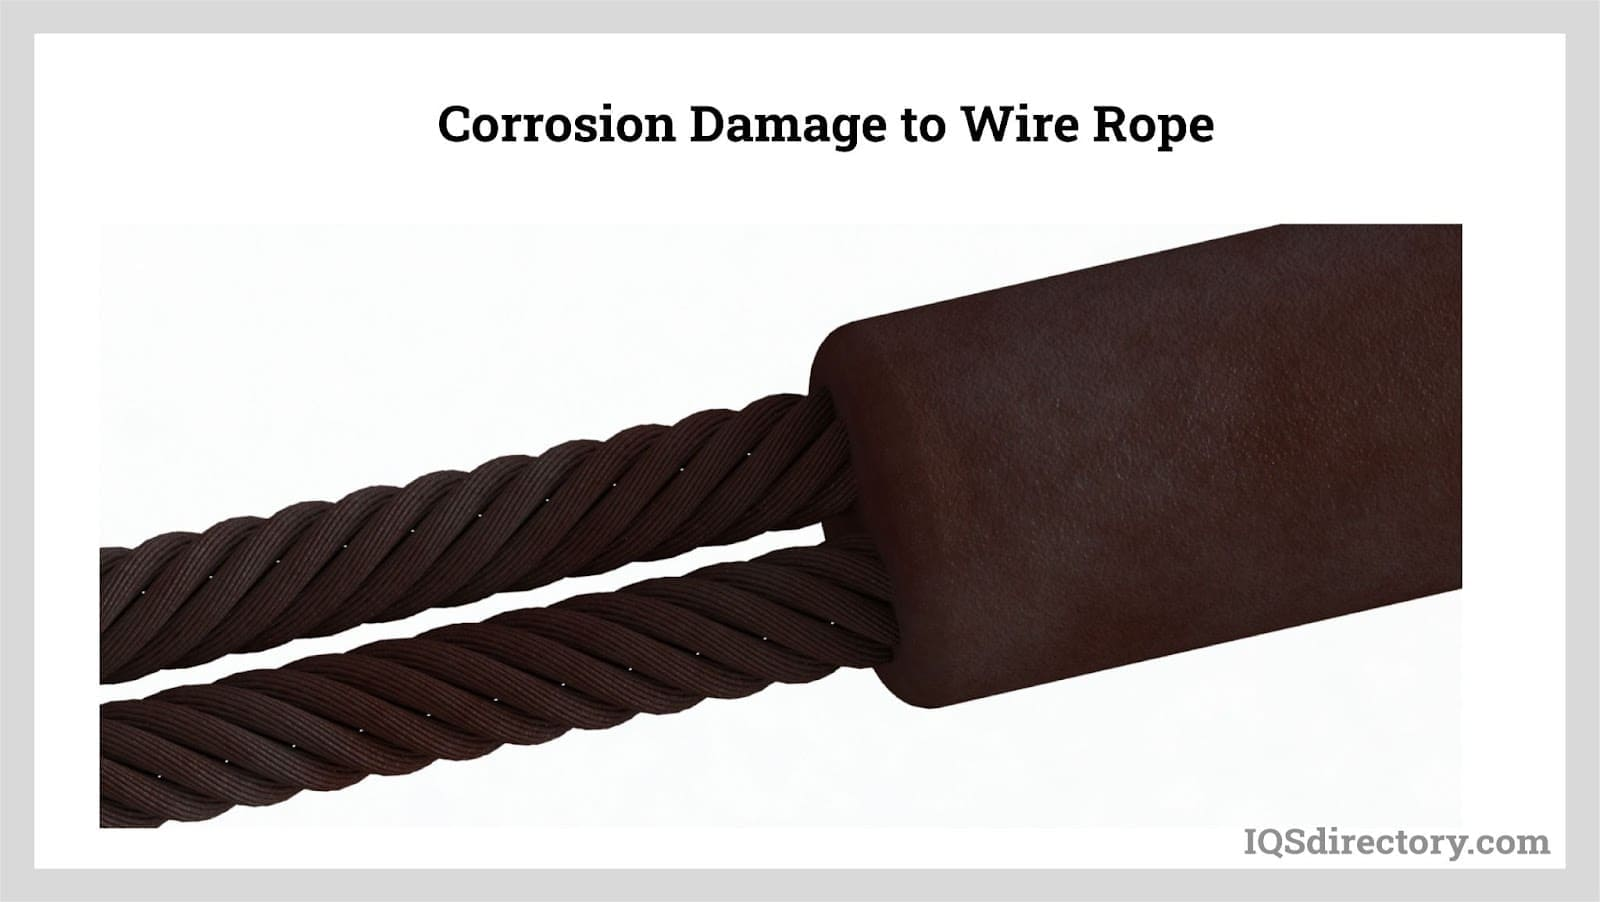 Corrosion Damage to Wire Rope